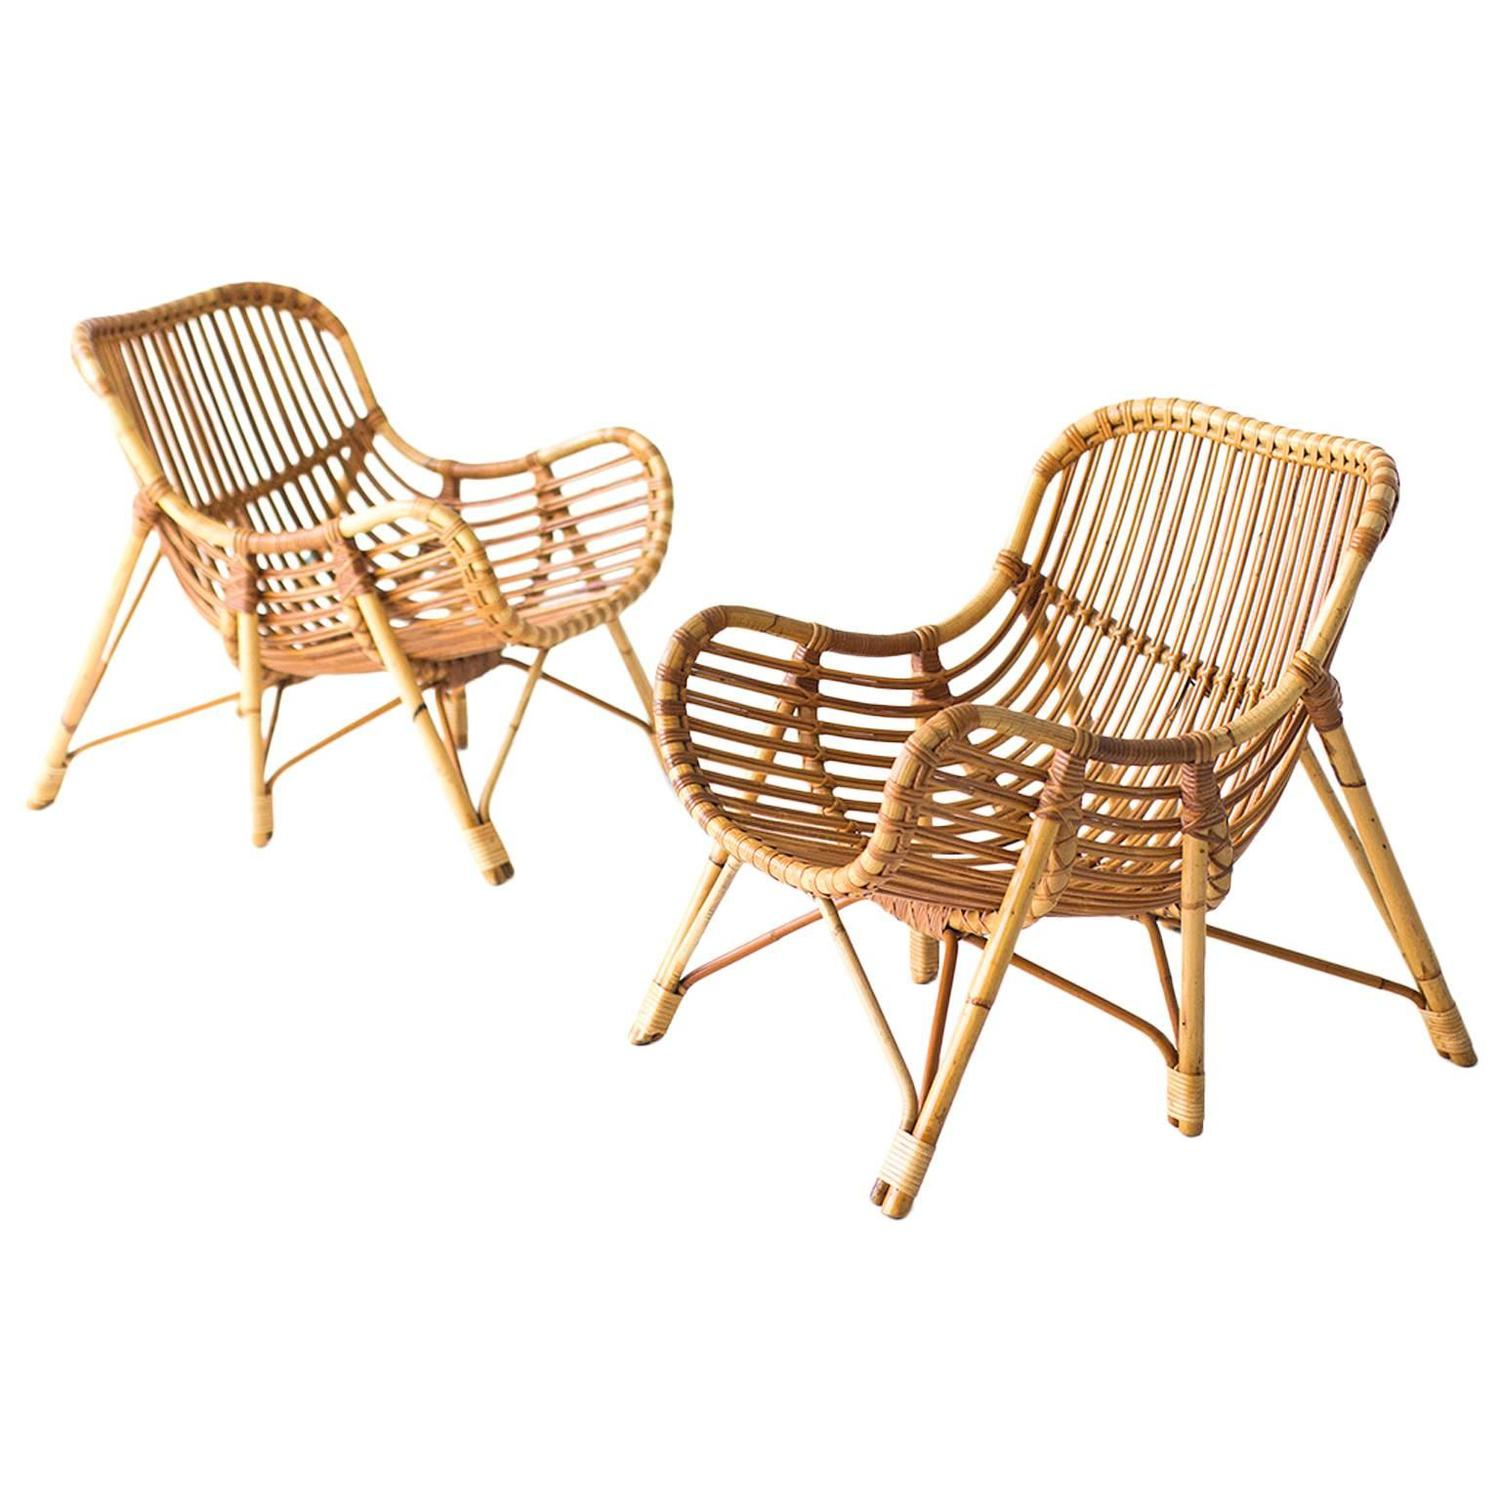 Danish Bamboo And Wicker Lounge Chairs By Laurids Lonborg At 1stdibs